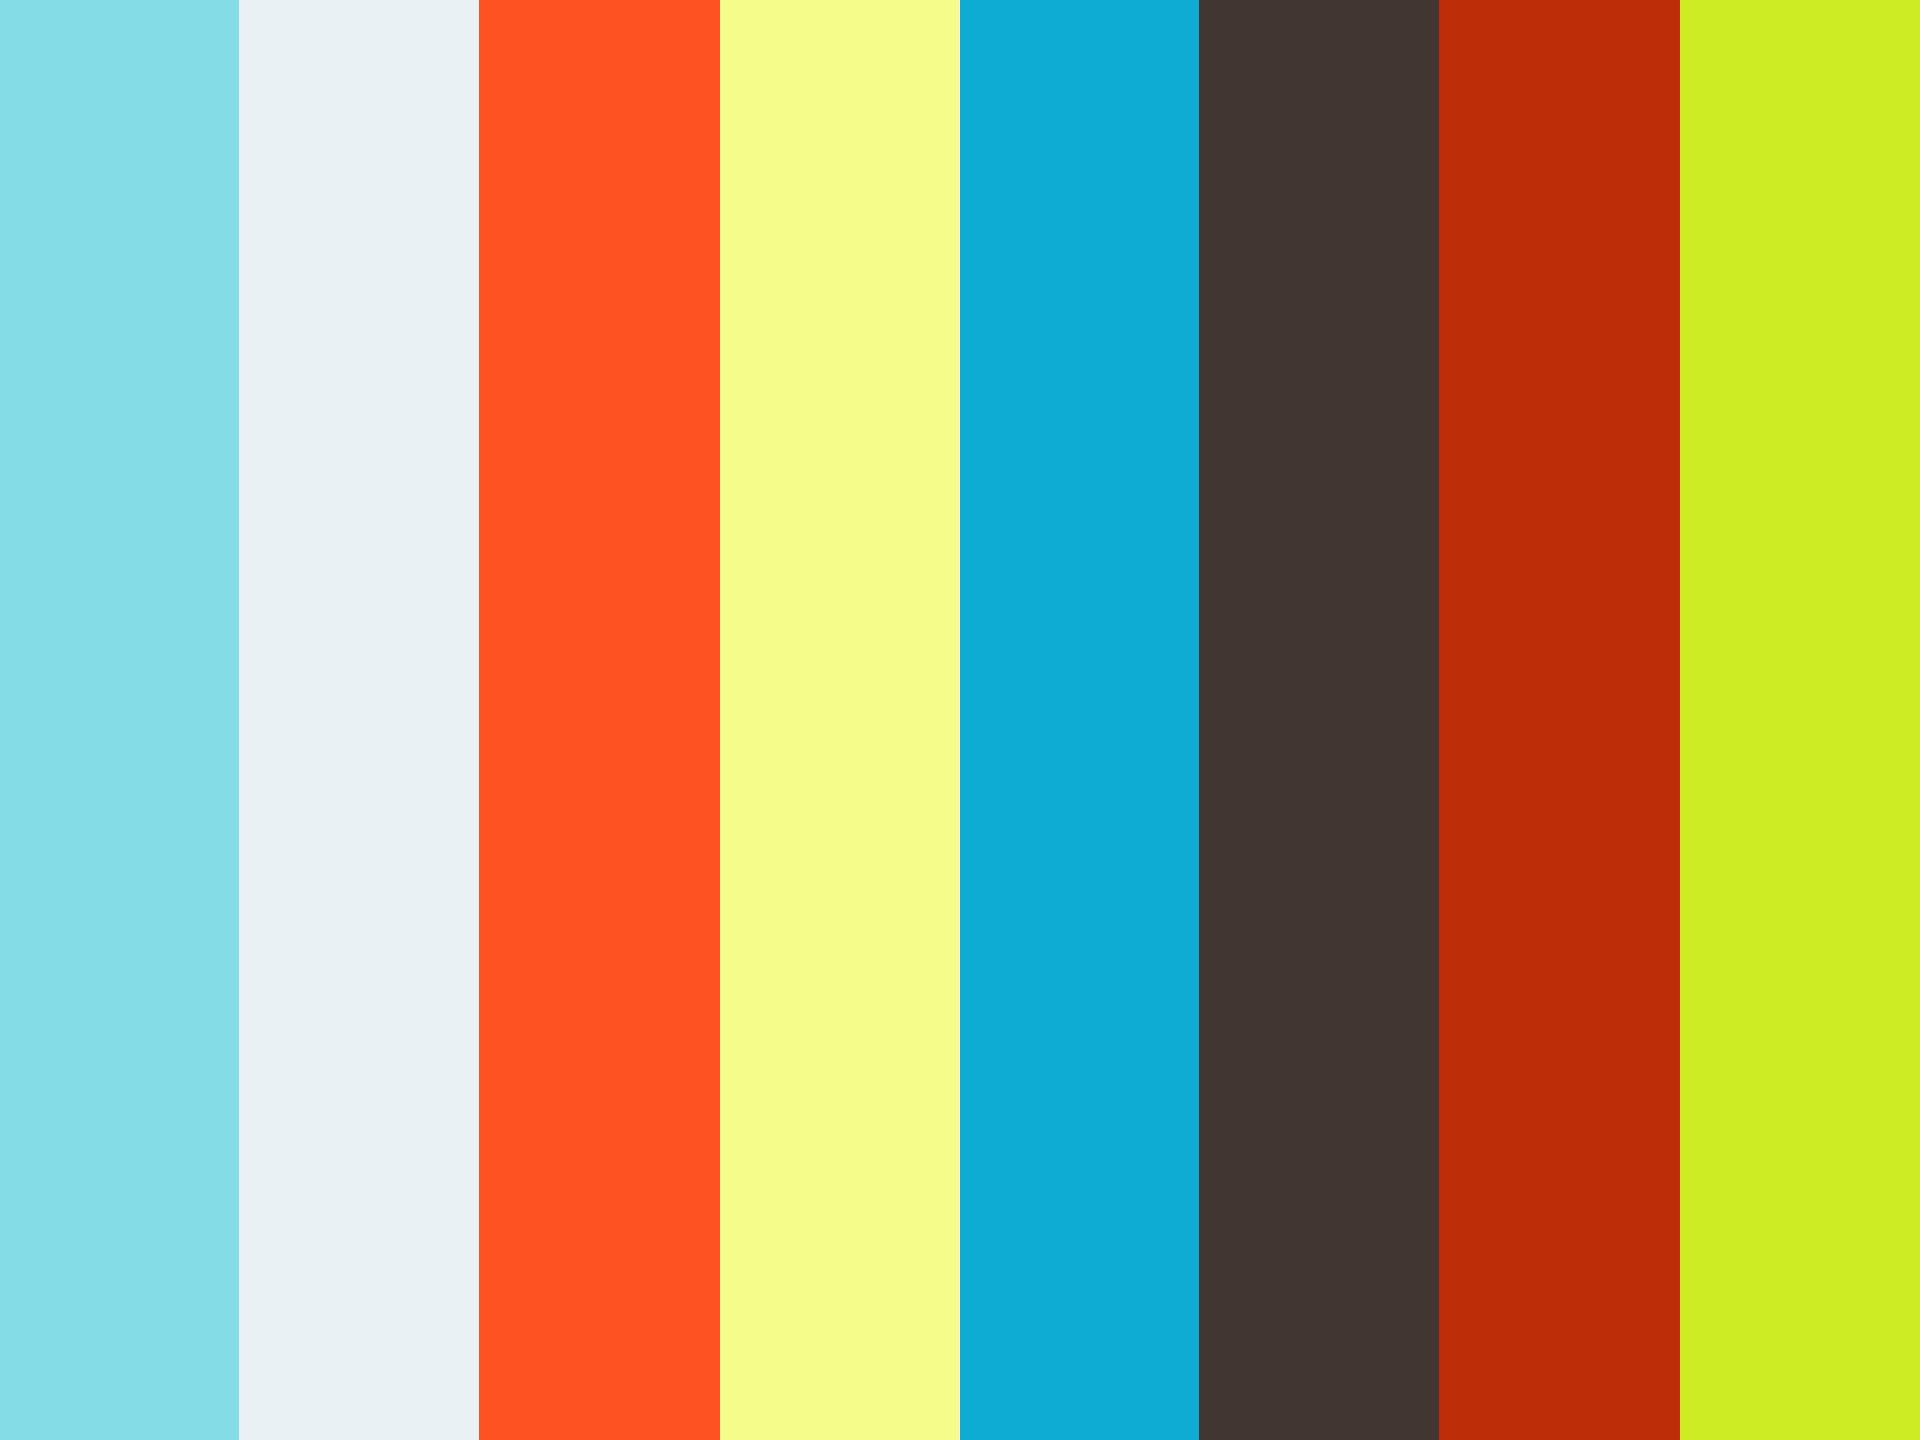 Anastomotic Leak after Colorectal Resection: A Population-Based Study of Risk Factors and Hospital Variation 2016